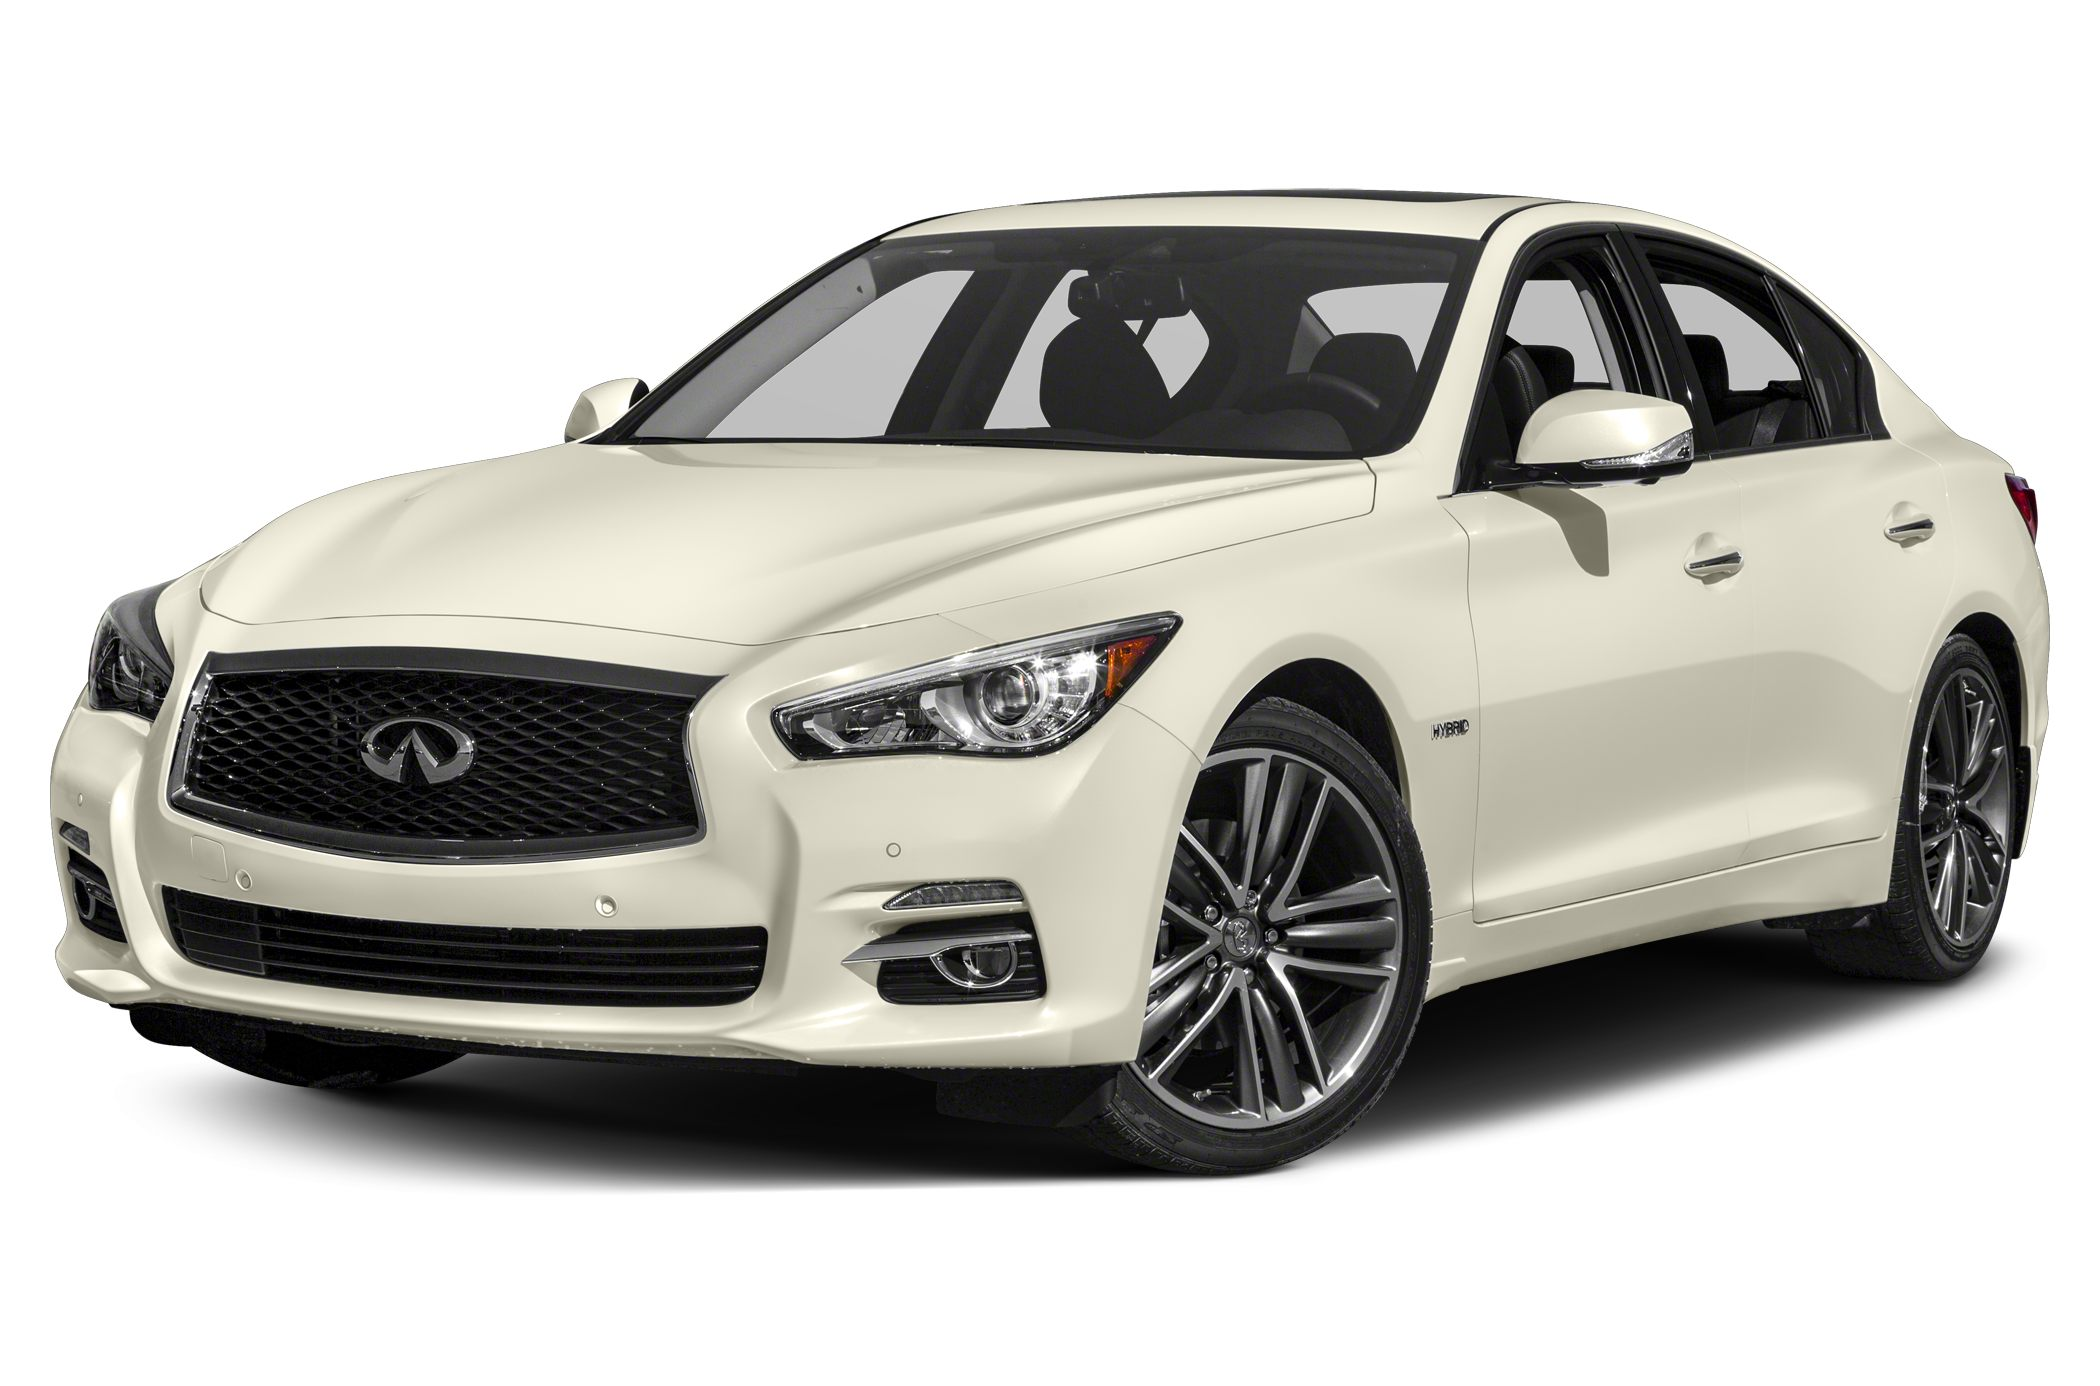 2017 Infiniti Q50 Hybrid Pricing And Specs